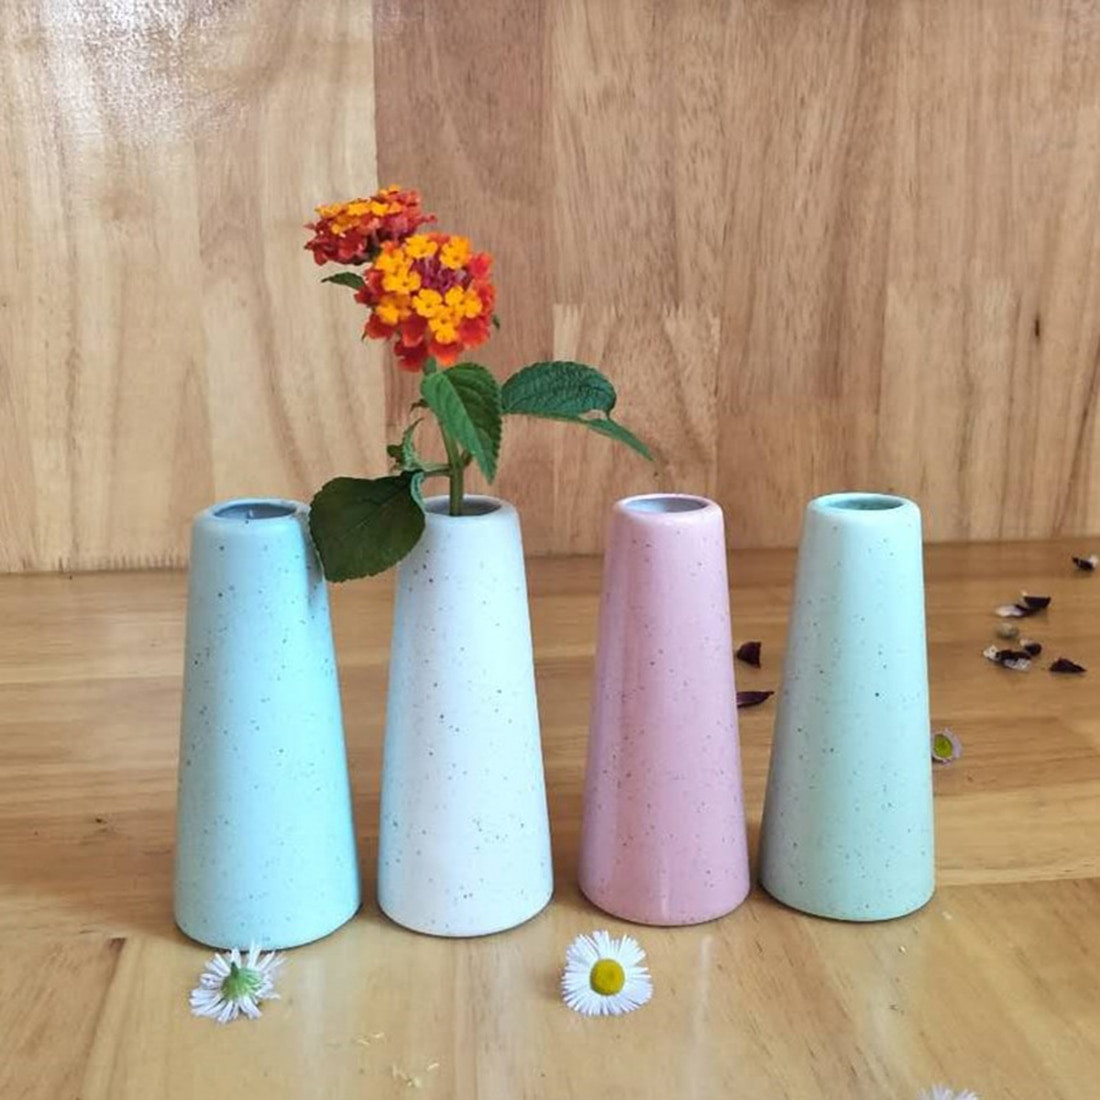 23 Stunning Korean Vases for Sale